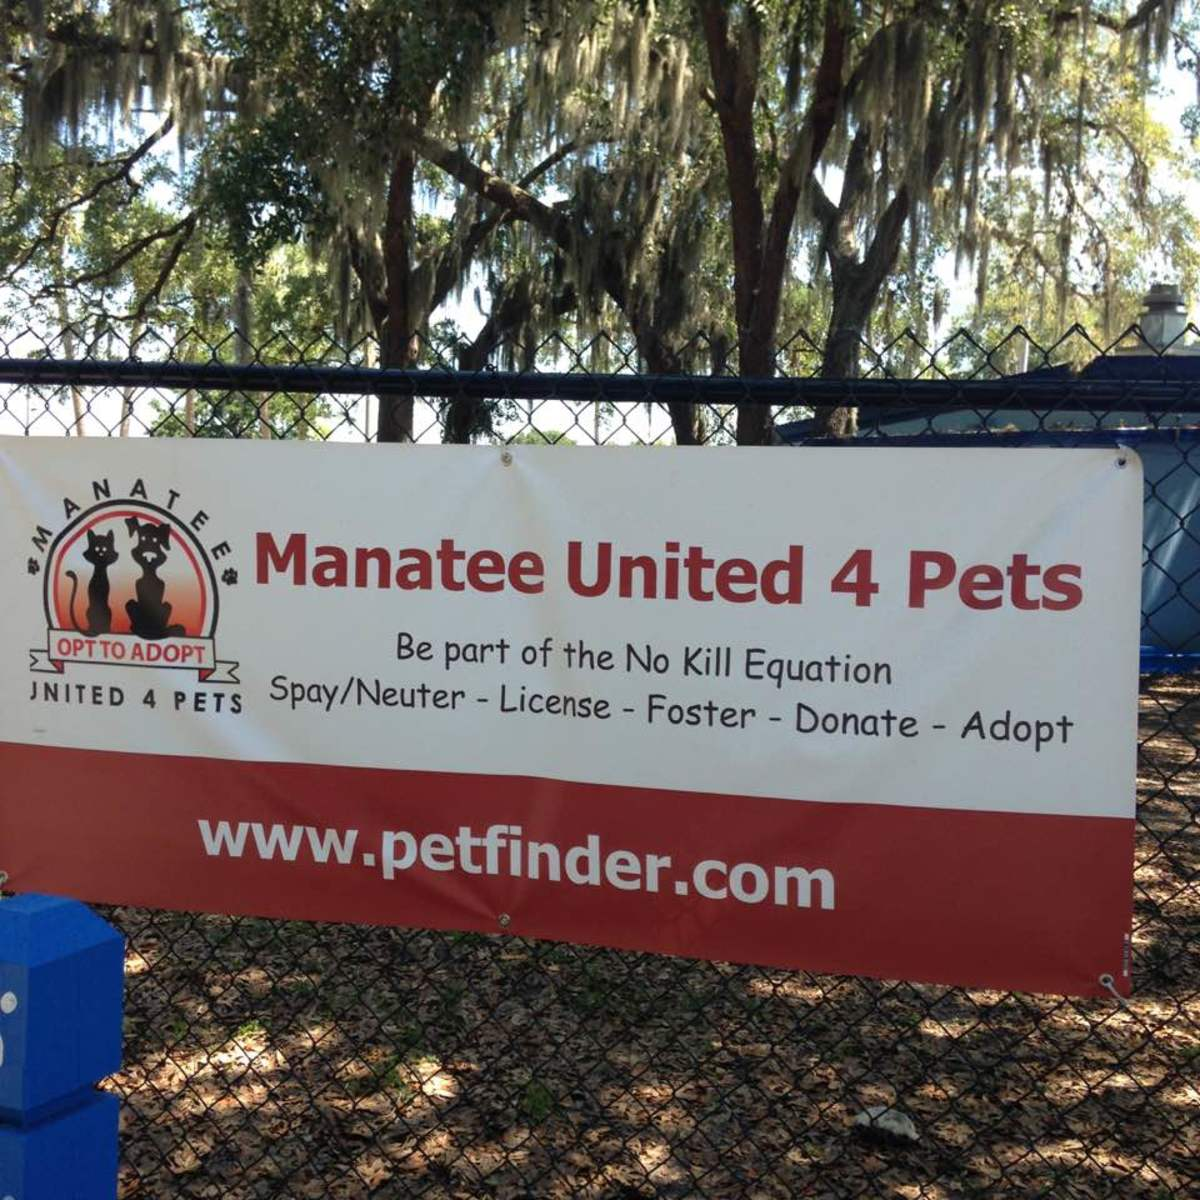 Shelter in Palmetto, Florida, is on the move with creative programs.